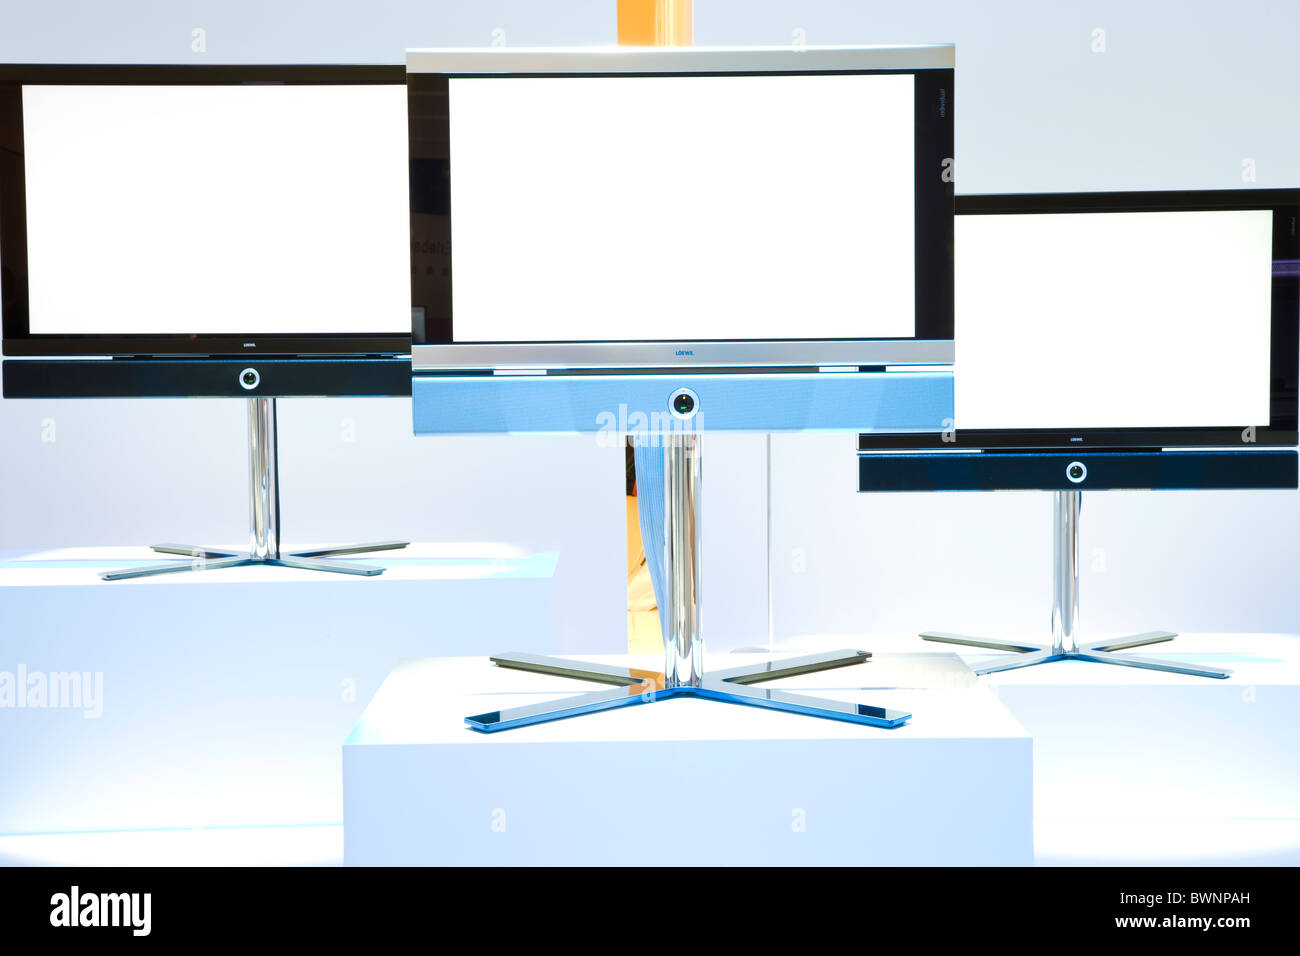 High quality LCD TV's - Stock Image